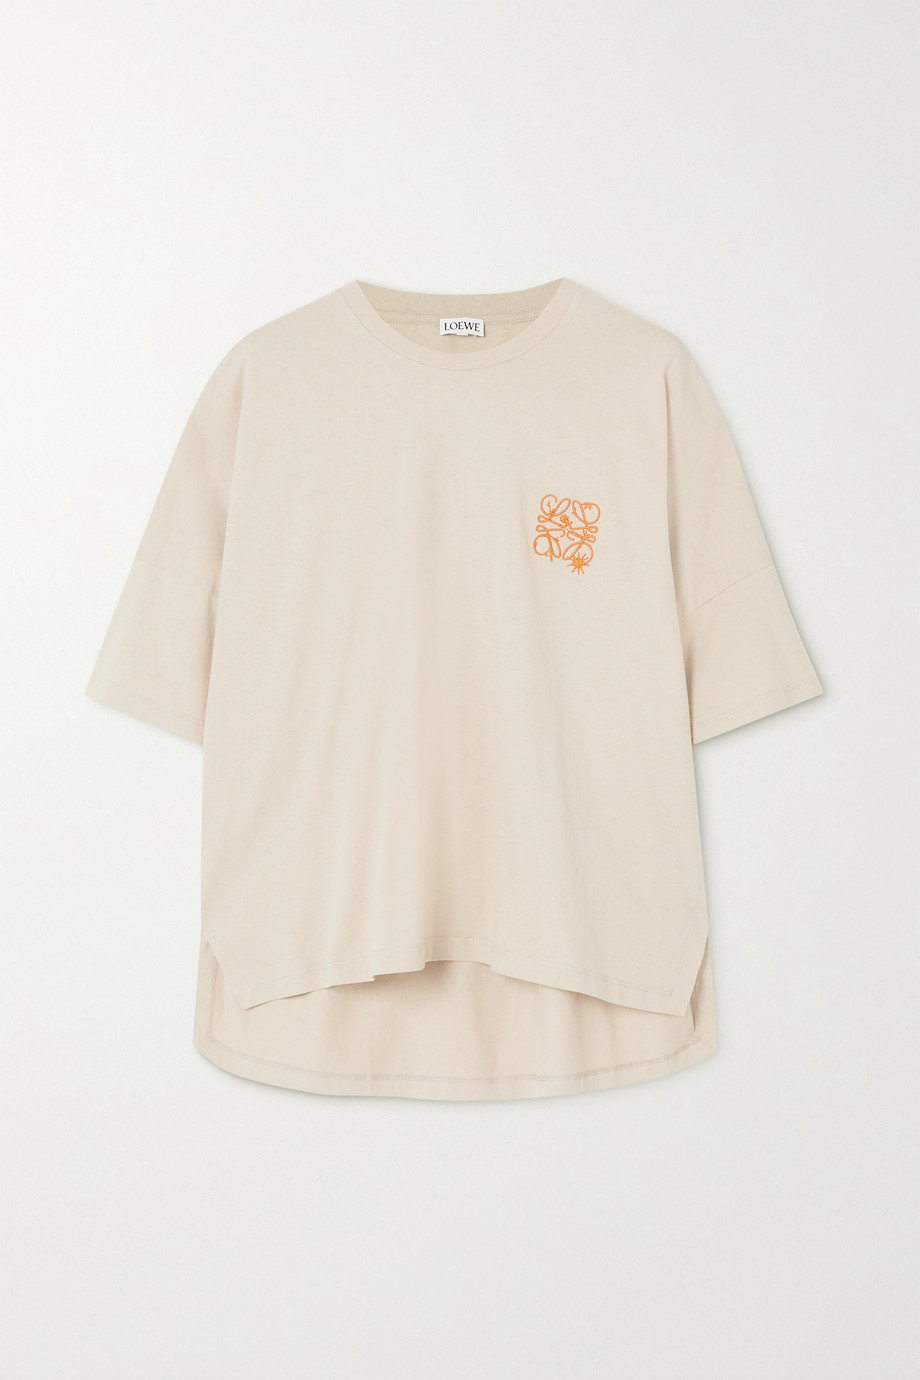 Loewe Oversized embroidered cotton-jersey T-shirt